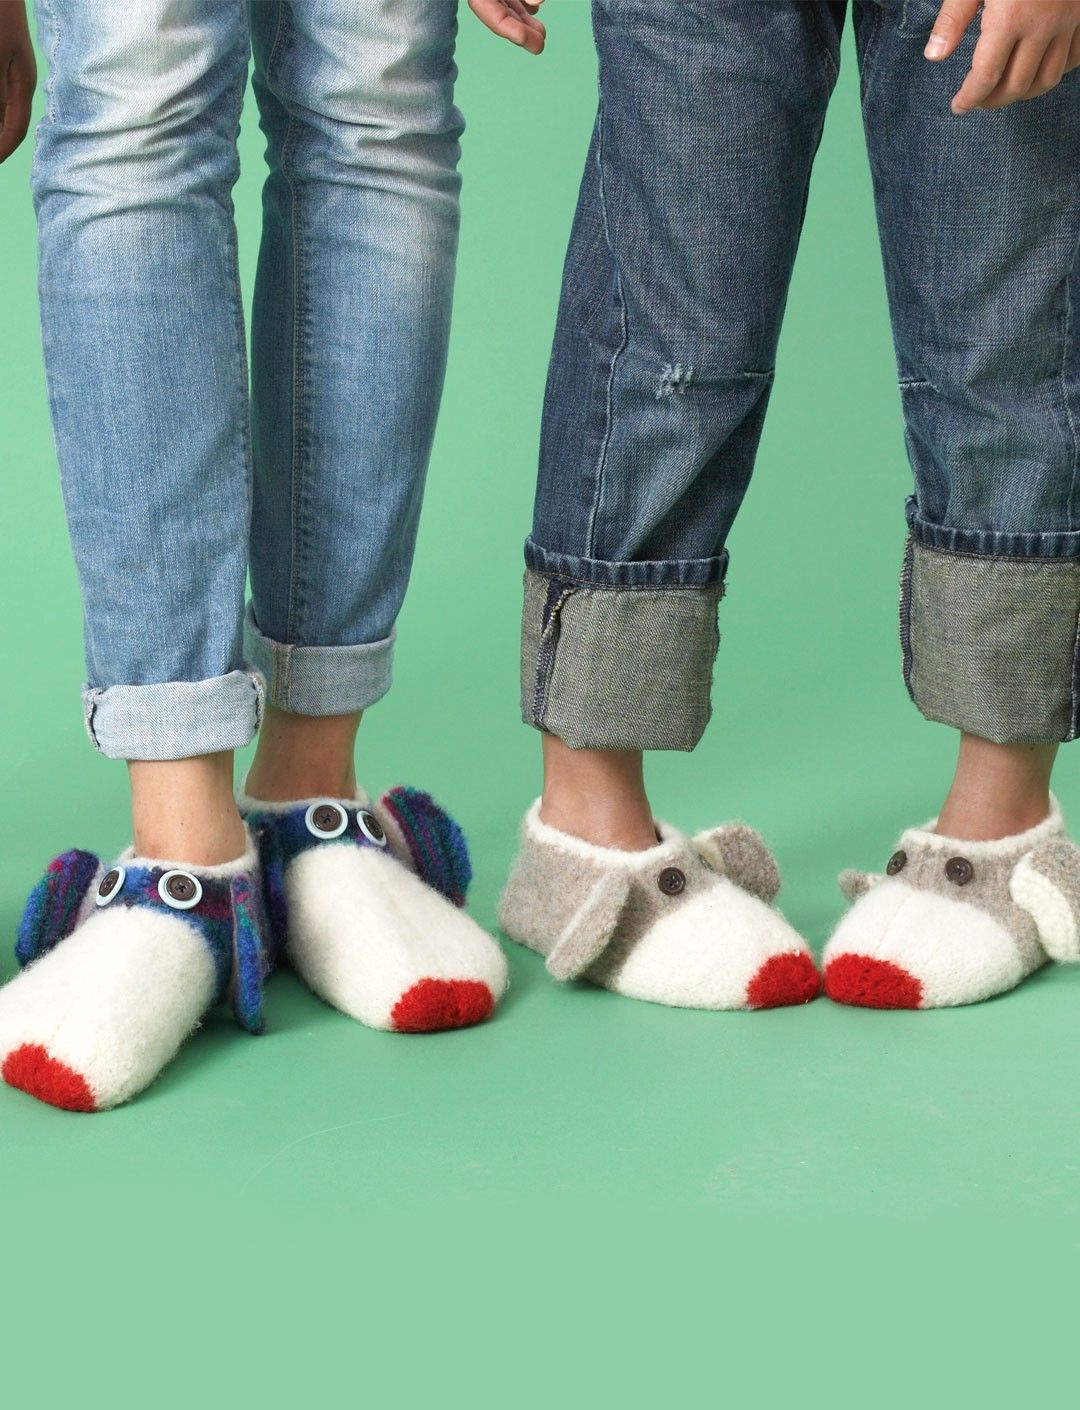 Yarnspirations patons monkey felted slippers patterns these slippers are adorable button eyed sock monkeys that keep feet warm and fun an easy pattern to knit in three sizes spanning shoe size kids of all ages bankloansurffo Choice Image